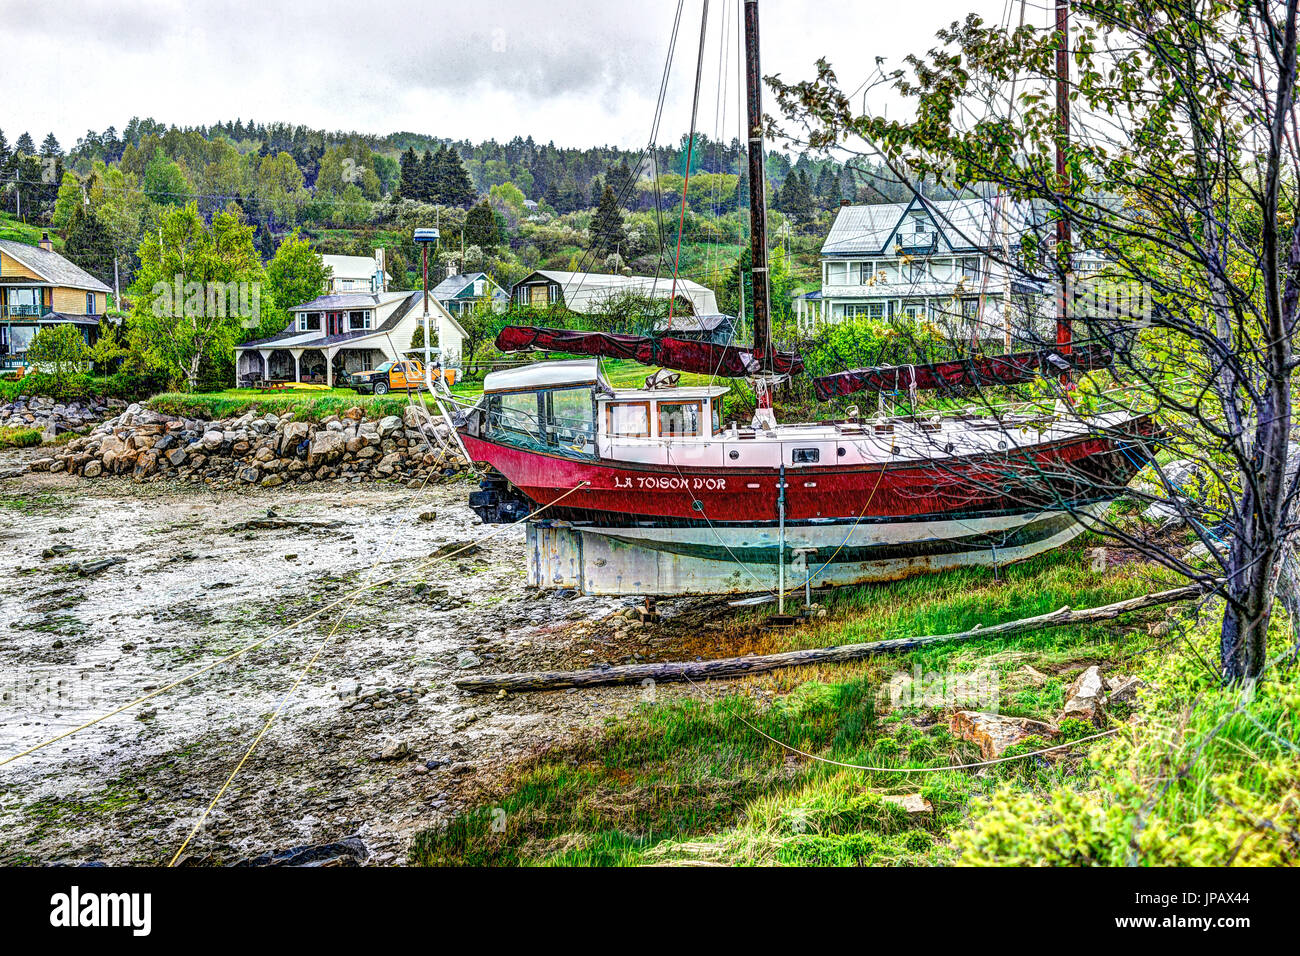 Port-au-Persil, Canada - June 2, 2017: Pier and harbor with red ship and sign La Toison D'Or in village of Quebec in Charlevoix region during stormy r - Stock Image